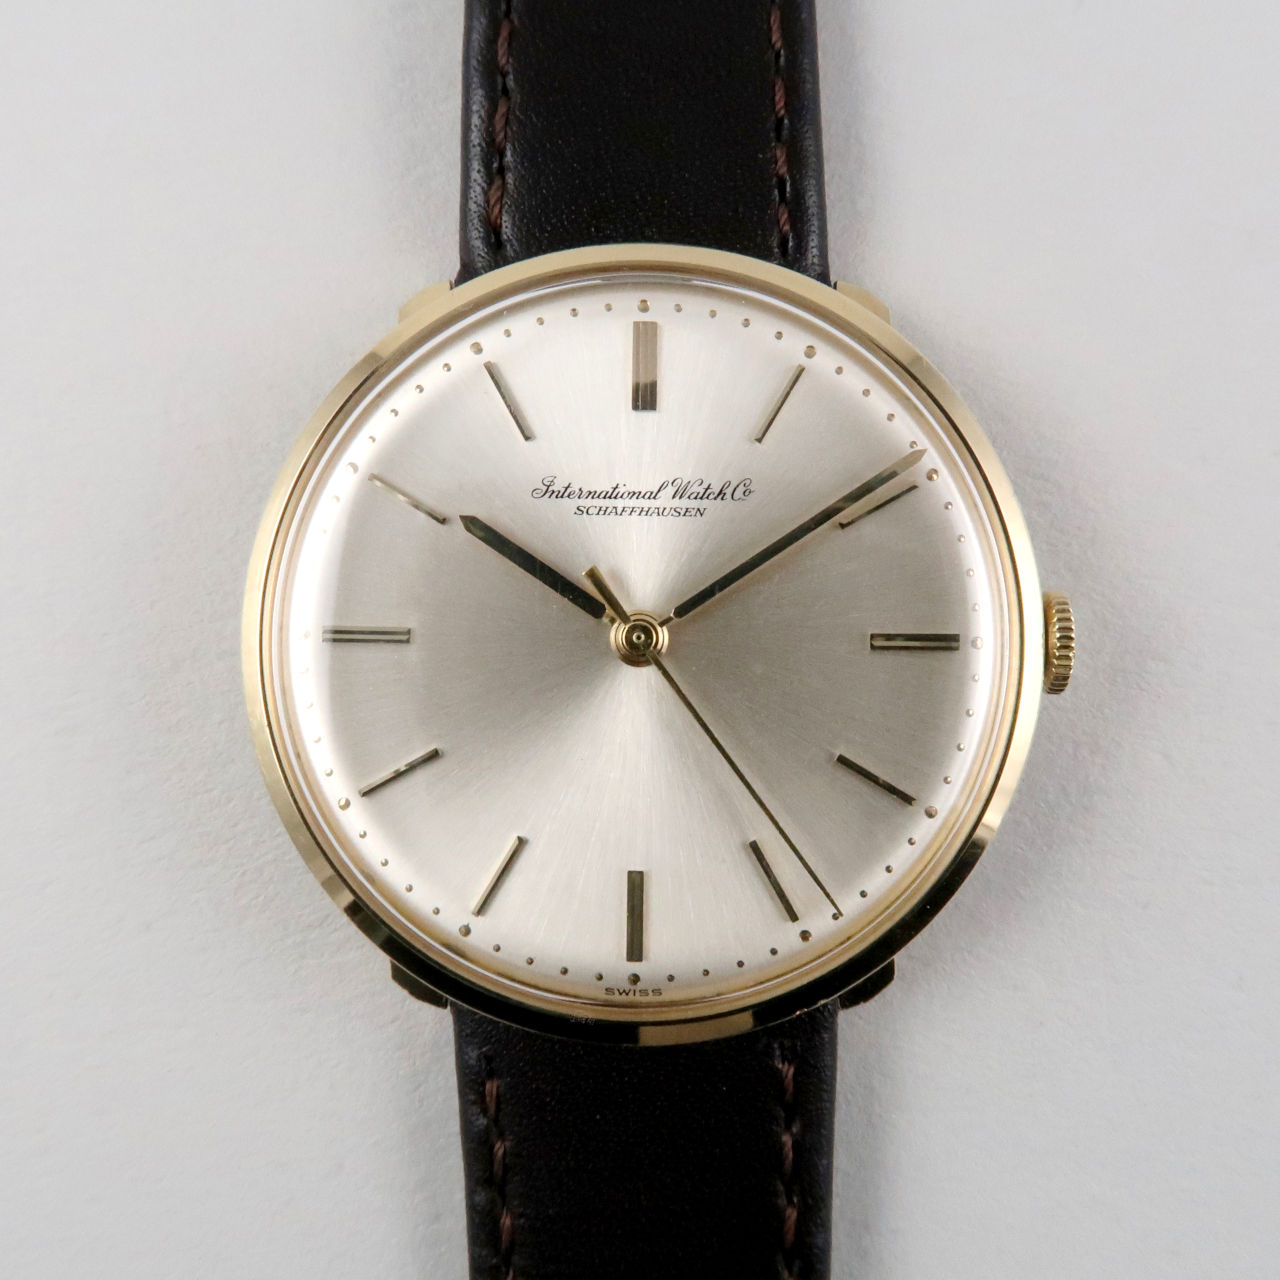 international-watch-co-ref-1410-gold-vintage-wristwatch-hallmarked-1968-wxiwcg-v01